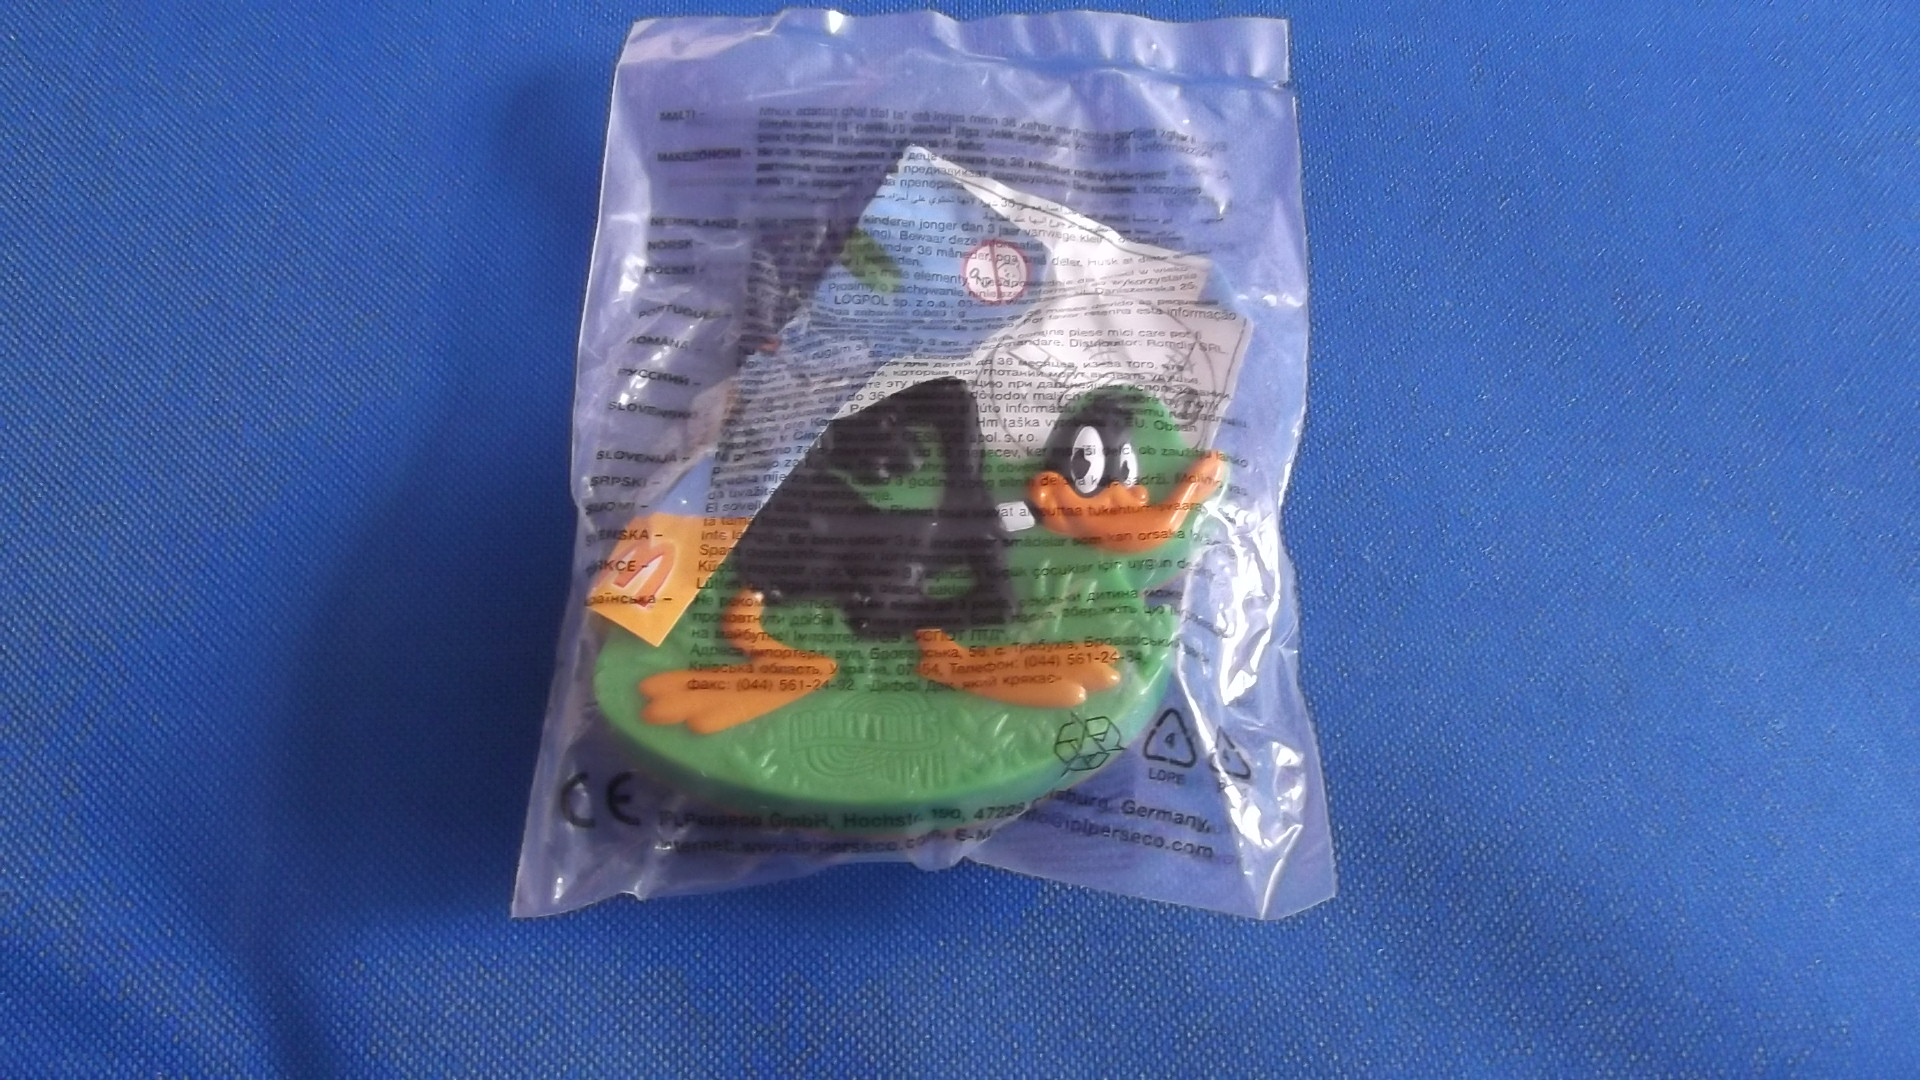 McDonalds Looney Tunes Active Daffy Duck Toy From 2009 New